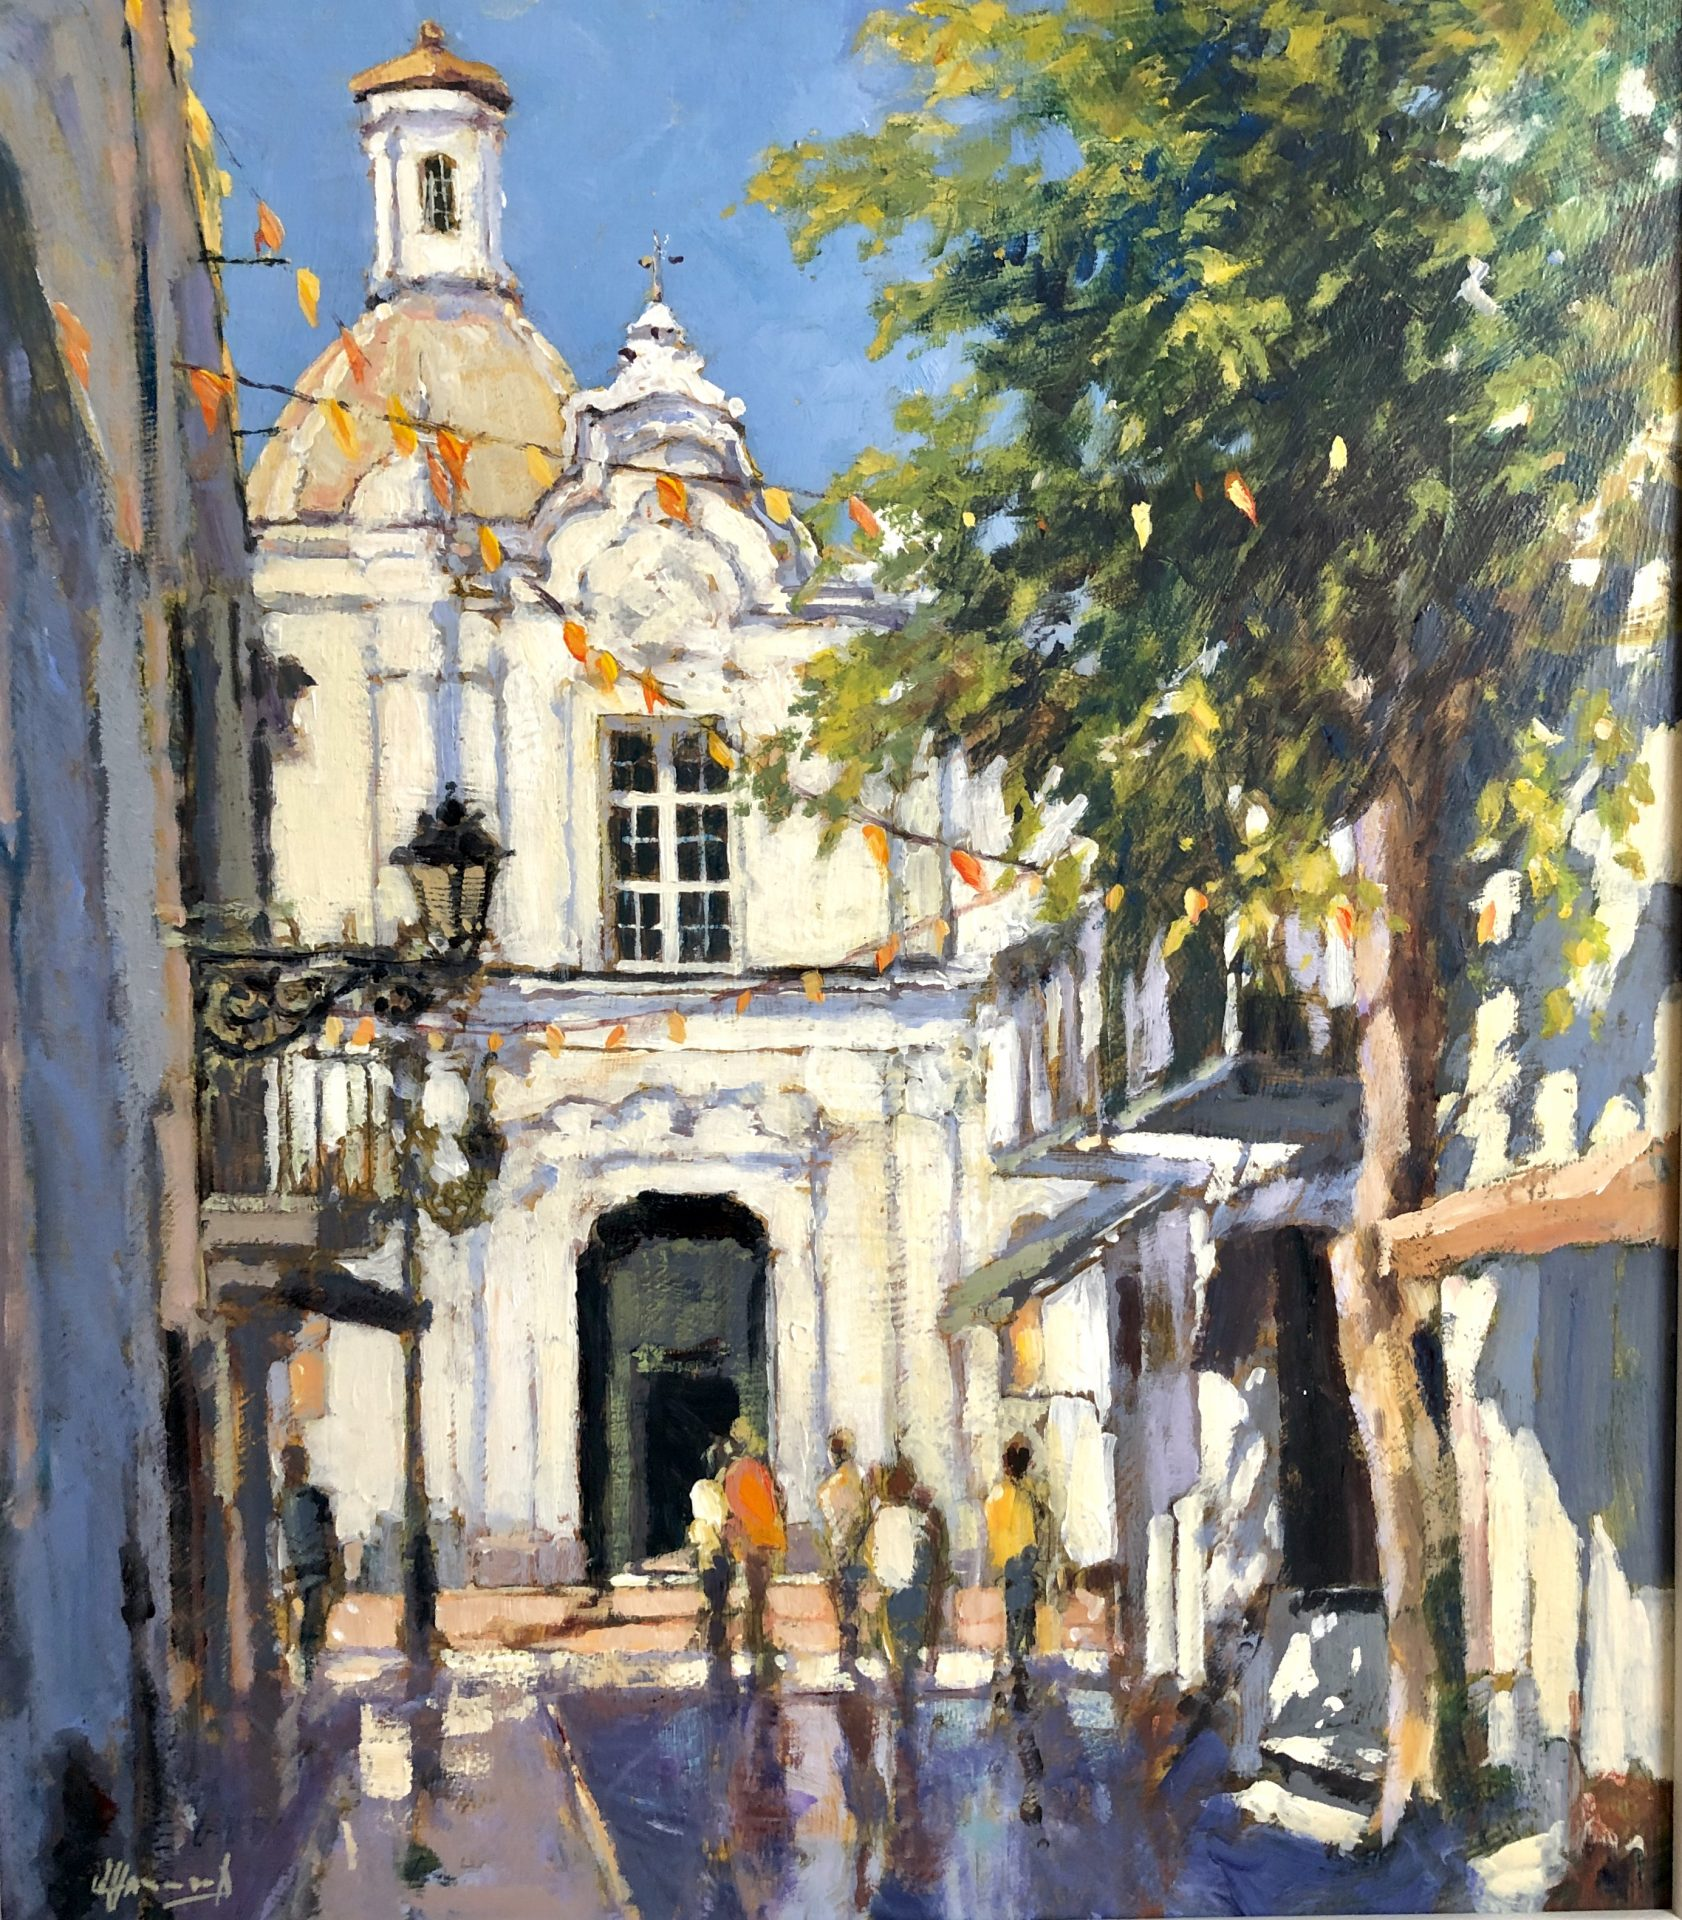 John Hammond Blue Sky Anacapri italy painting for sale